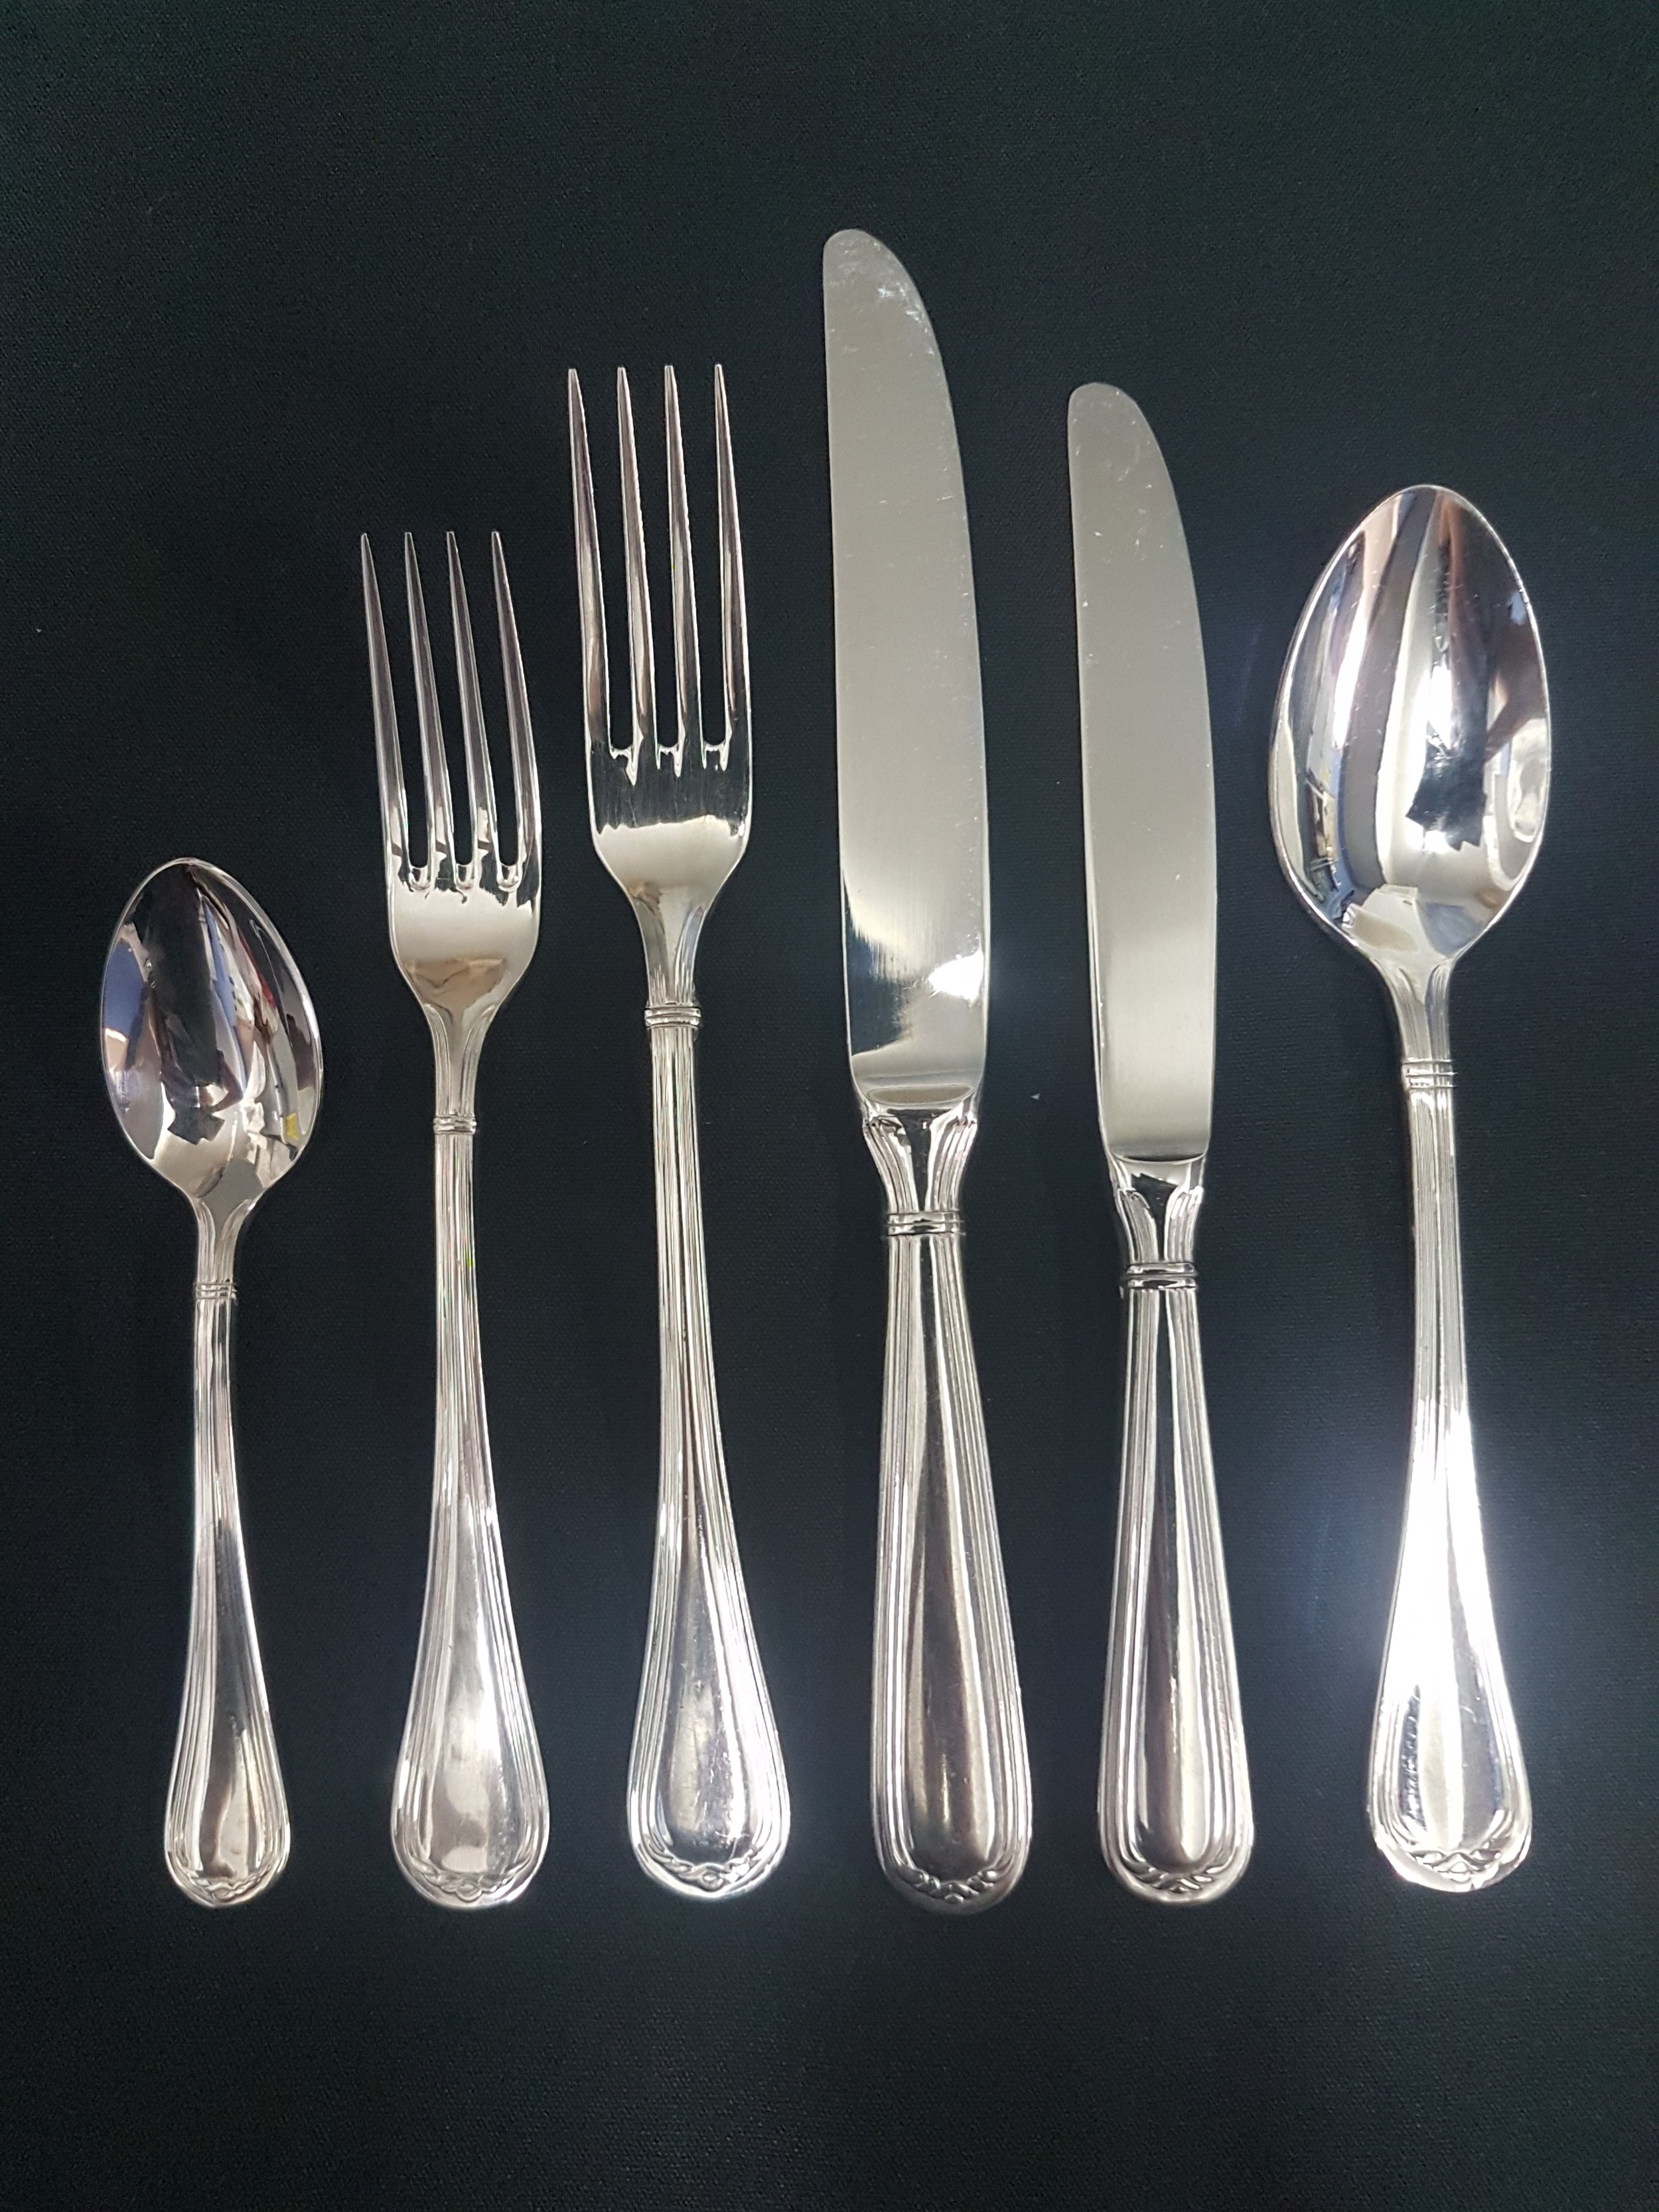 silver cutlery range - Teaspoon .66c eaEntree Fork .66c eaDinner Fork .66c eaDinner Knife .66c eaDessert Spoon .66c eaNo minimum amounts required for an order.Limited stock of the Silver Range.